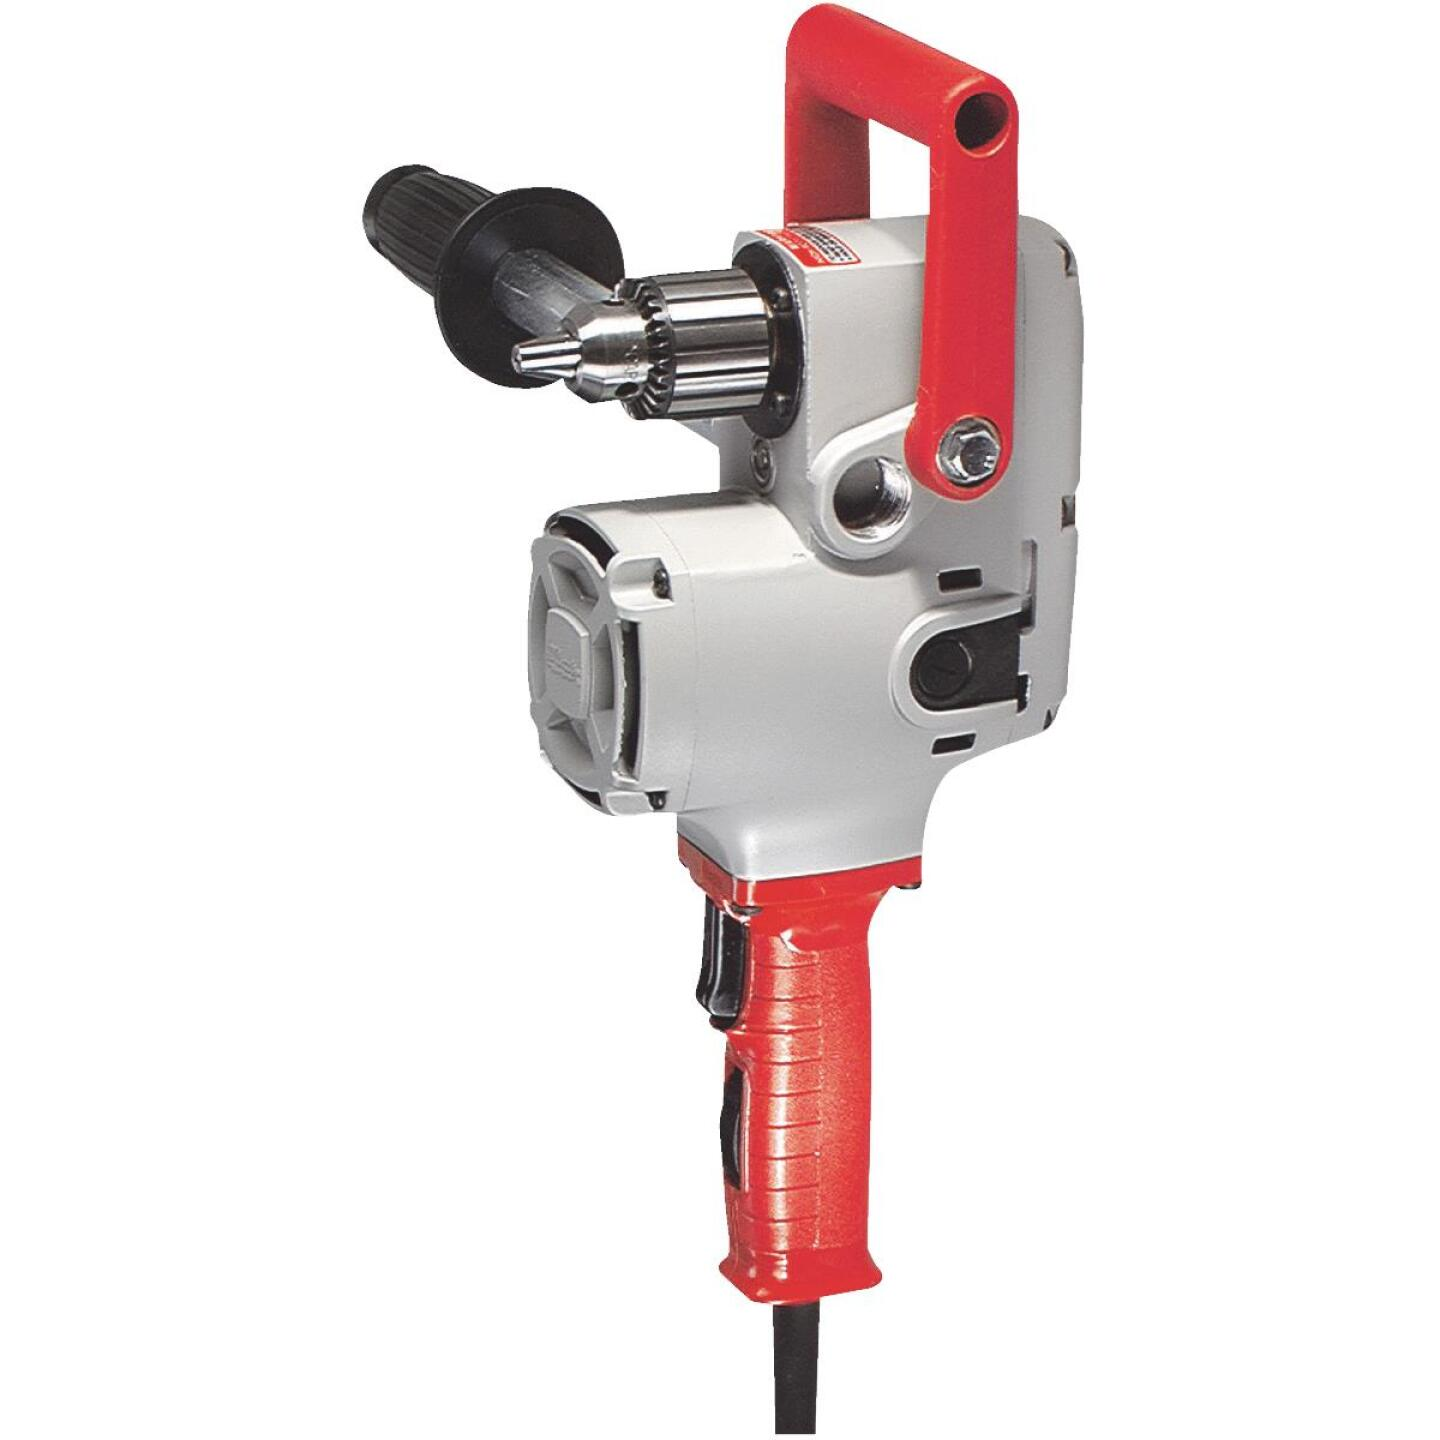 Milwaukee Hole Hawg 1/2 In. 7.5-Amp Keyed Electric Angle Drill with Case Image 1